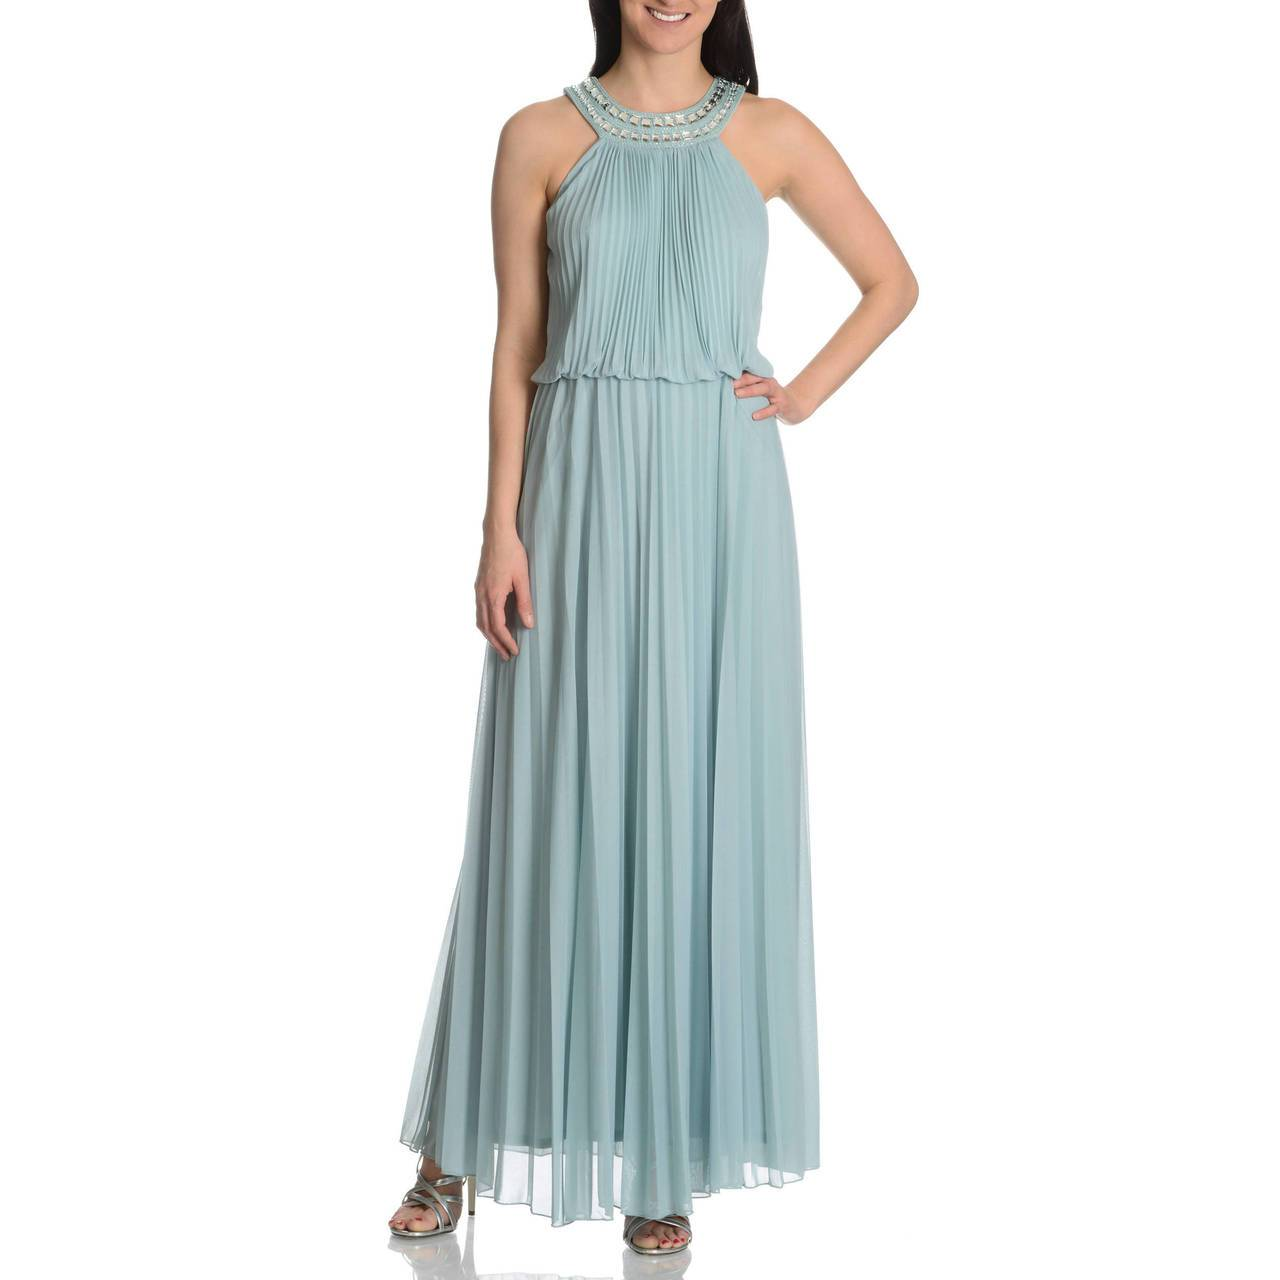 Cachet - 56579 Bejeweled Halter Accordion Pleats Long Dress in Green